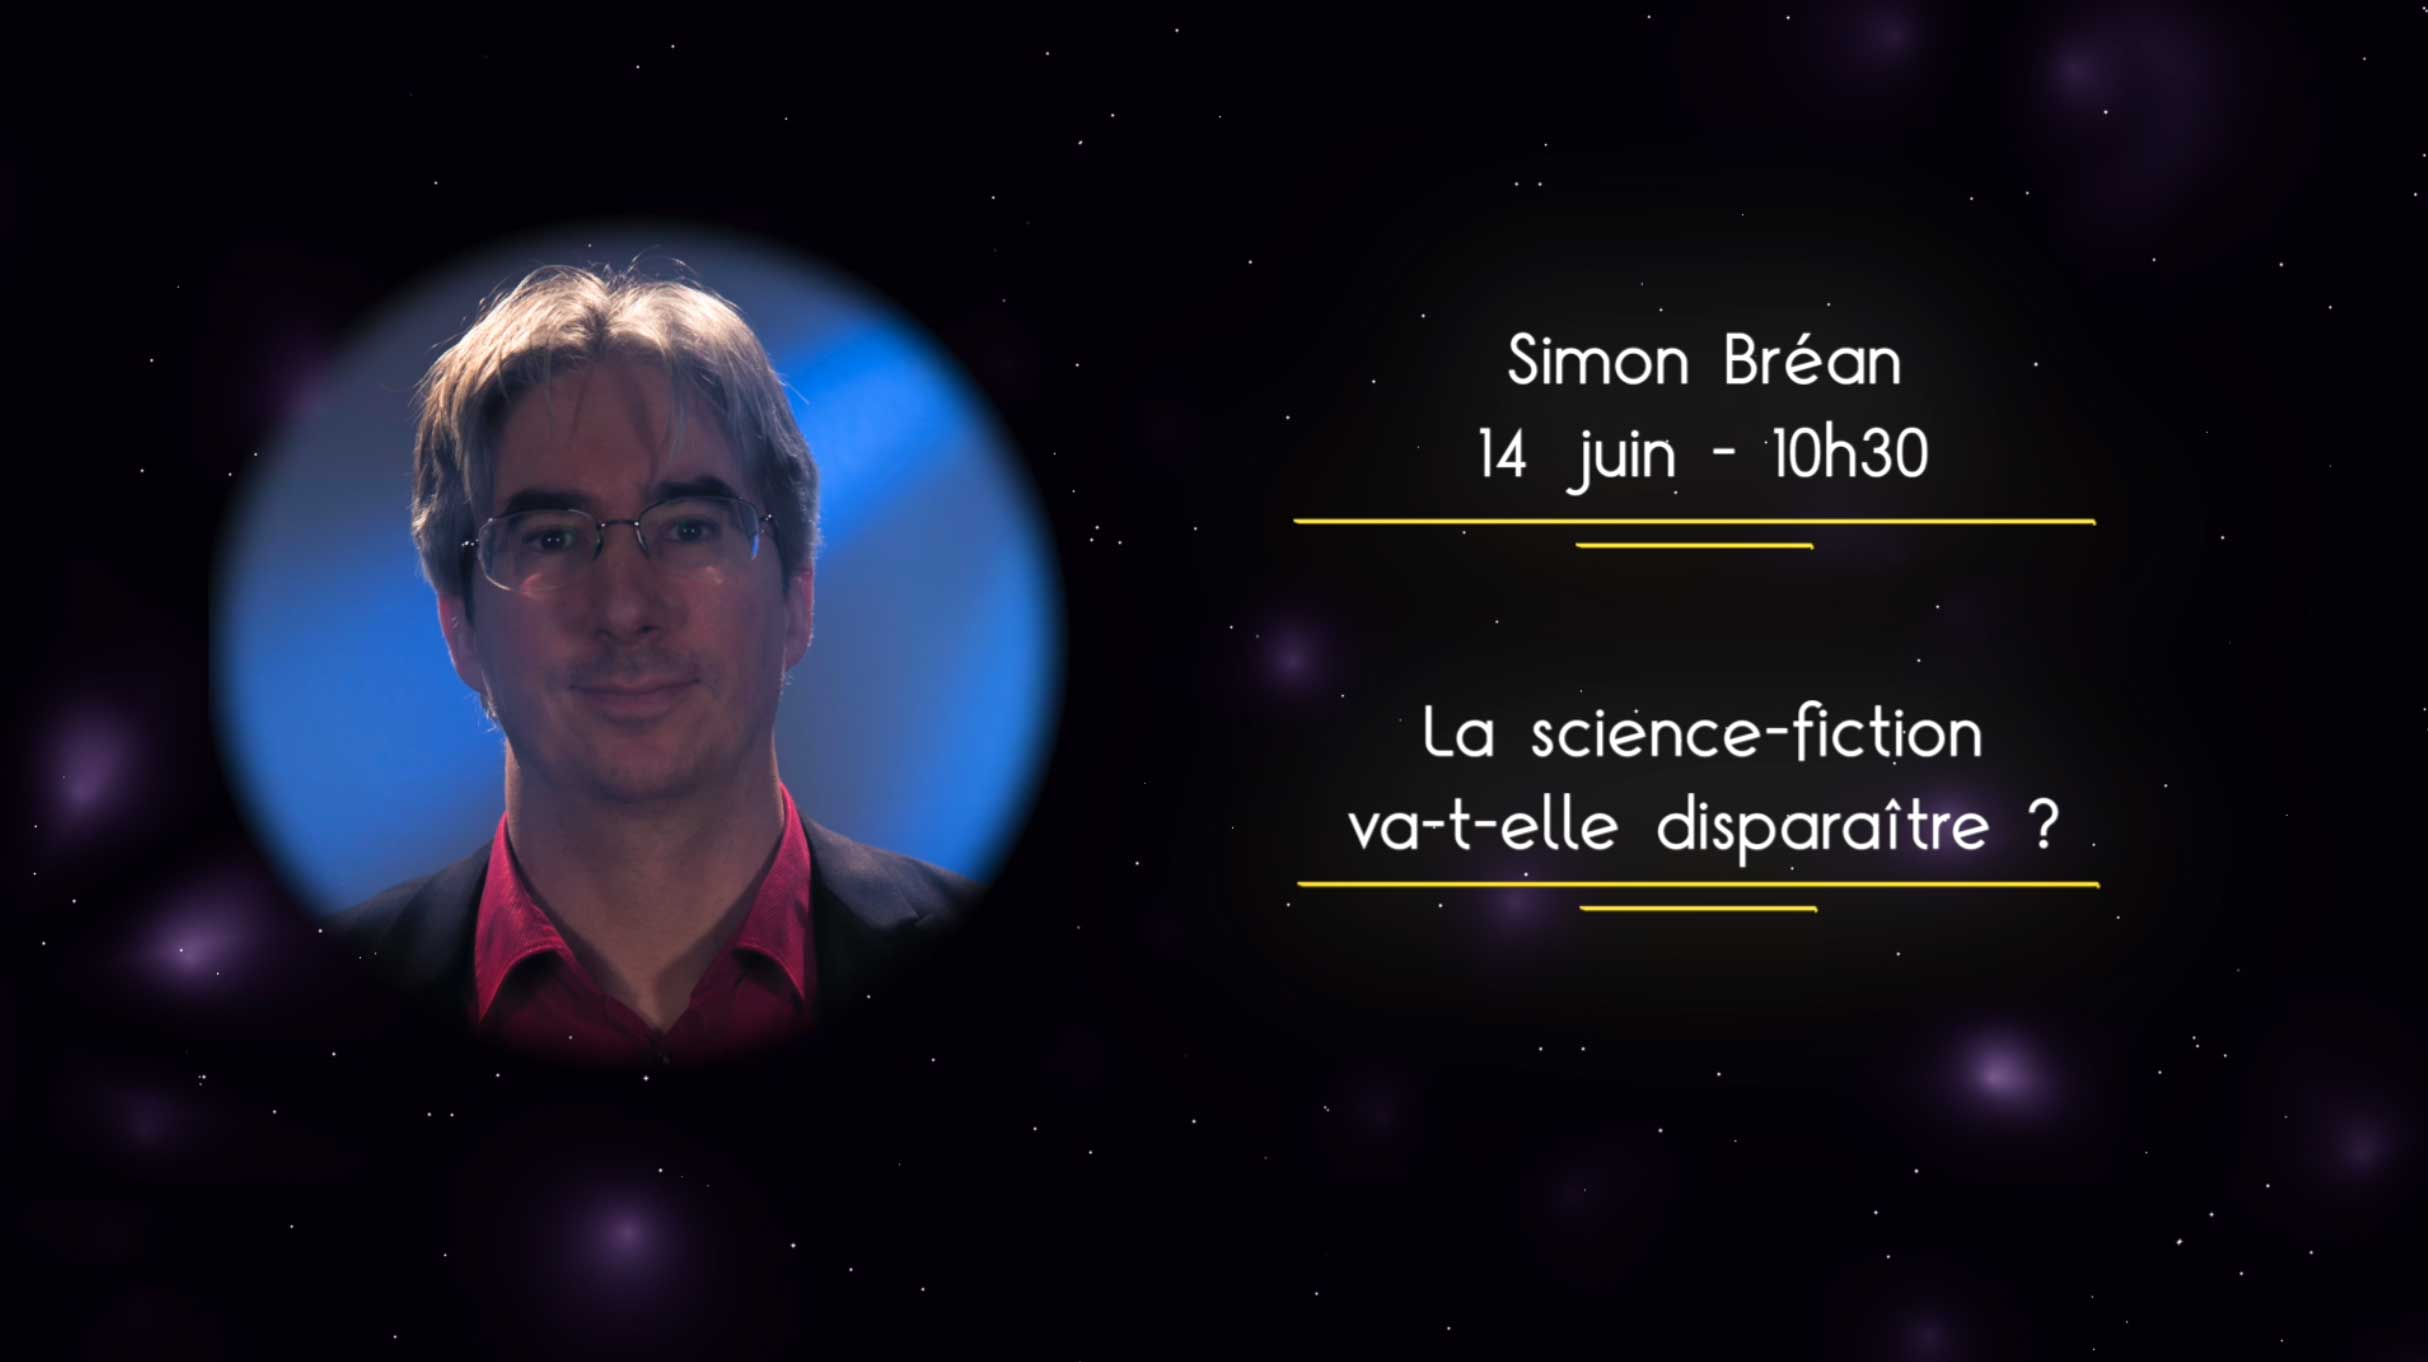 Simon Bréan - La science-fiction va-t-elle disparaitre ?